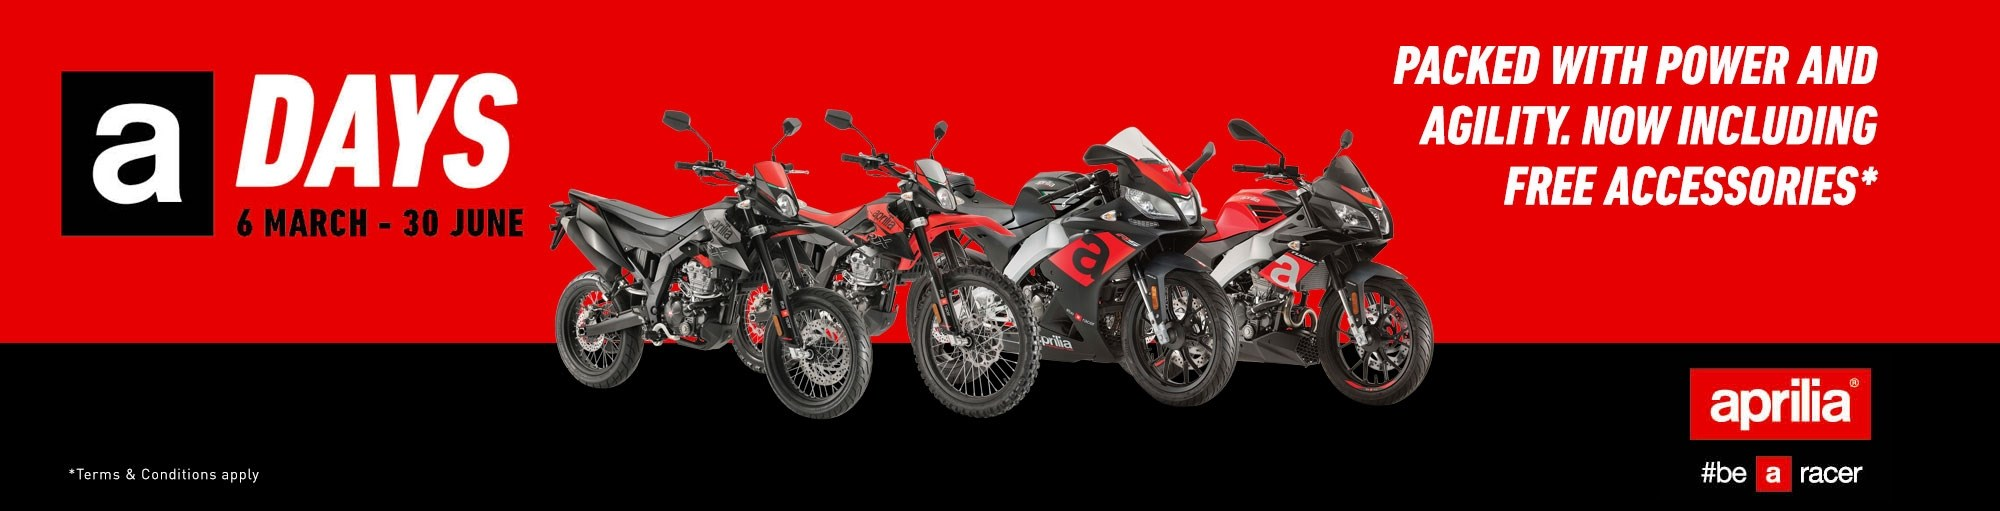 Free helmet and gloves with RS 125, Tuono 125, RX 125 or SX 125 models